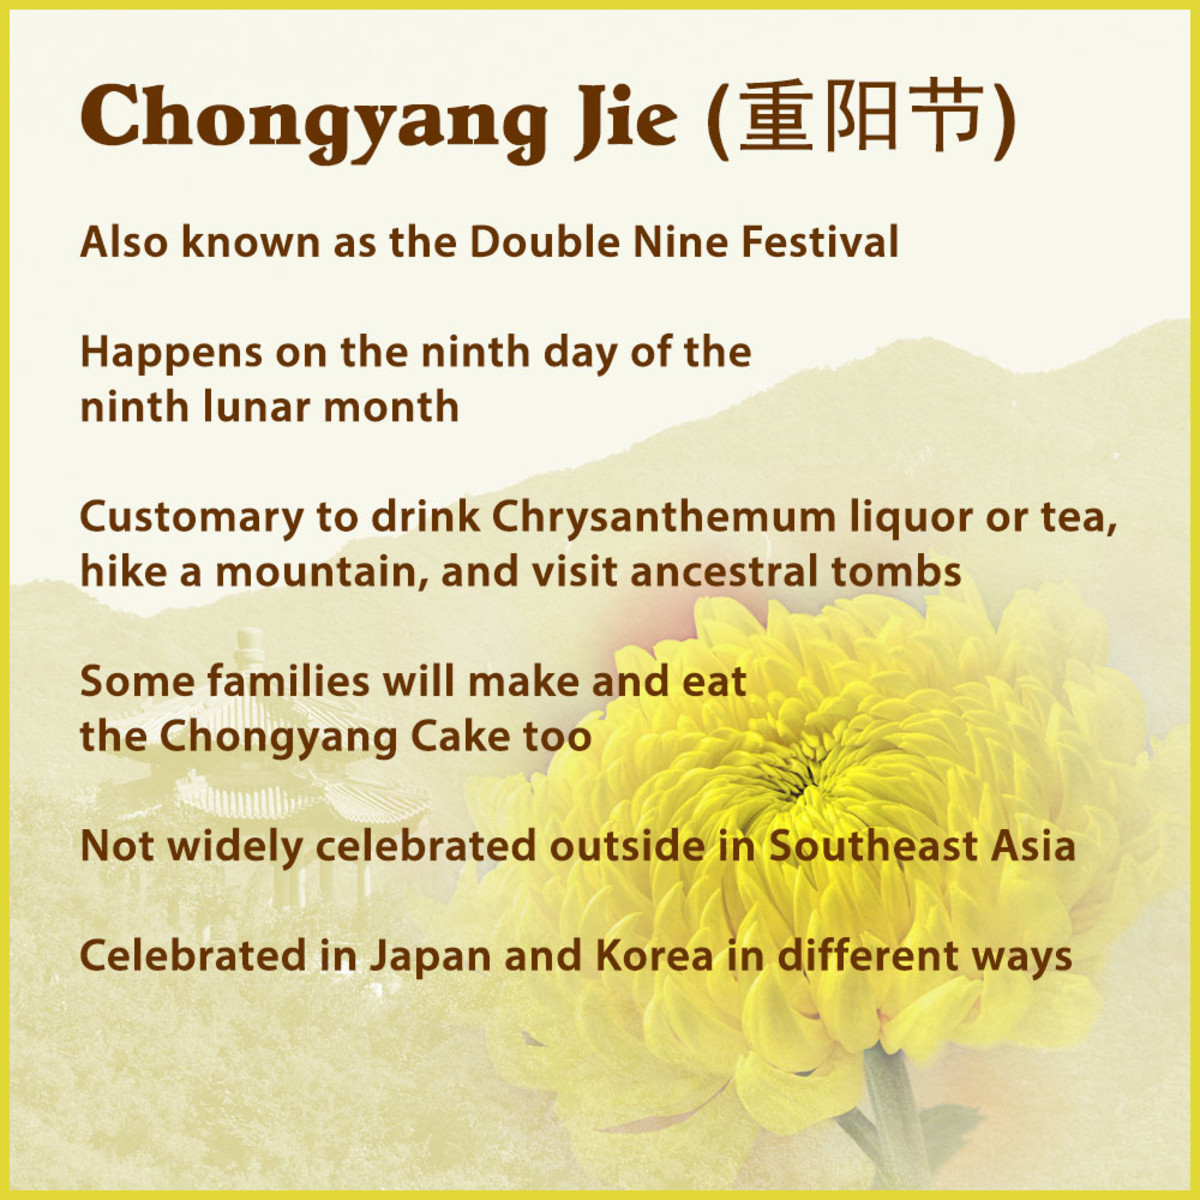 Chongyang is nowadays, not widely celebrated outside of East Asia. However, it remains an important ancestral festival in Chinese culture.